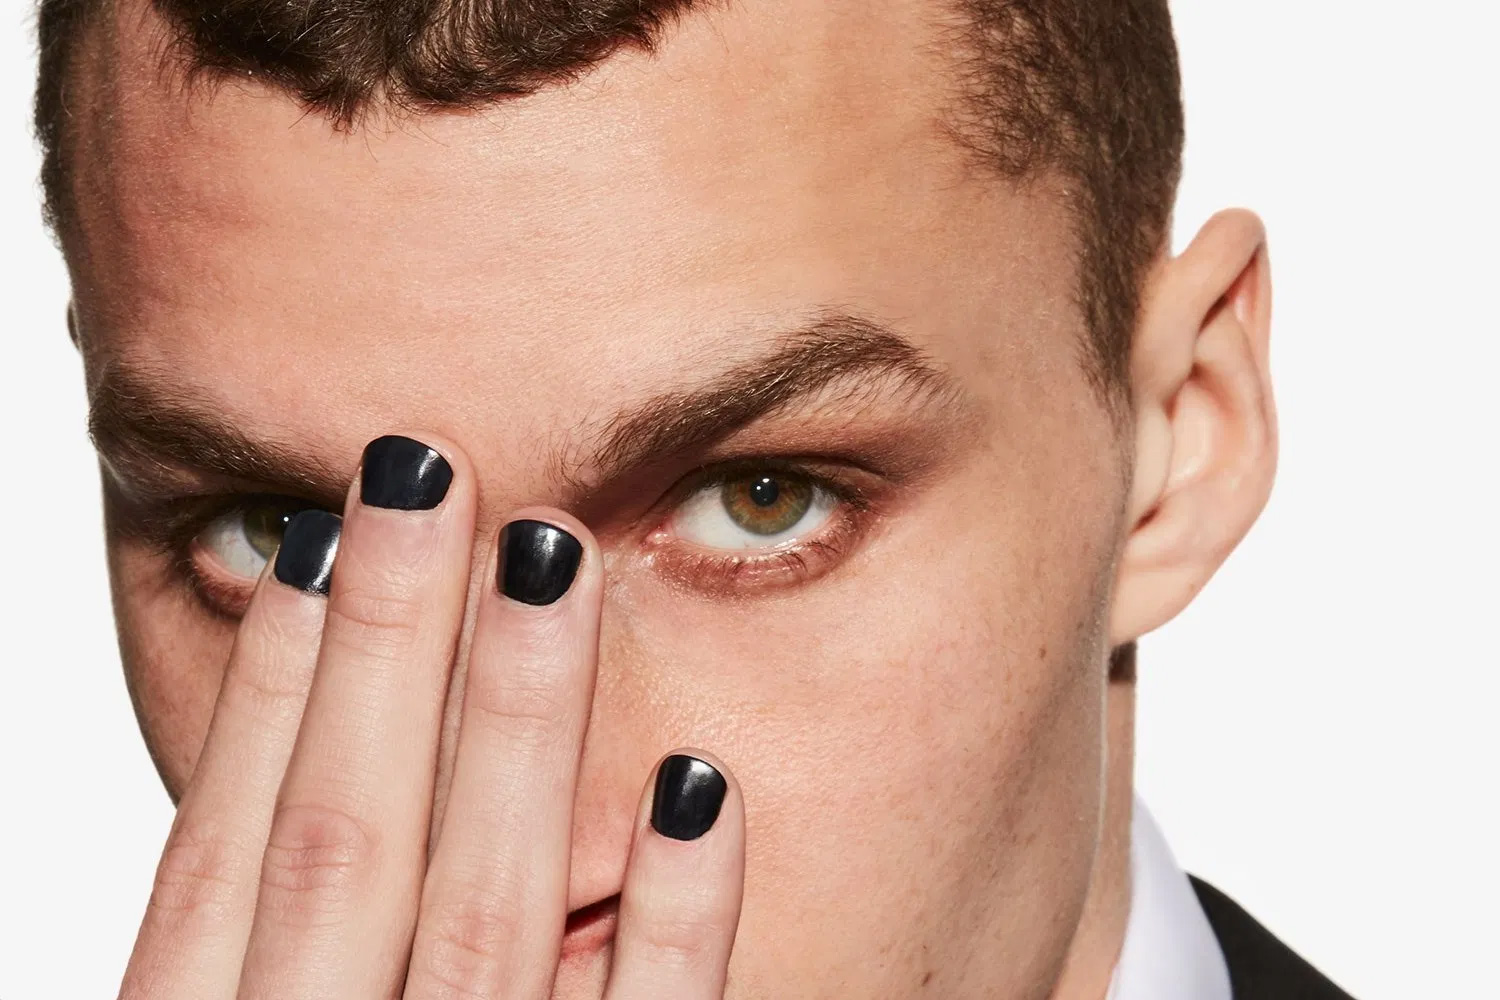 guy with black nails